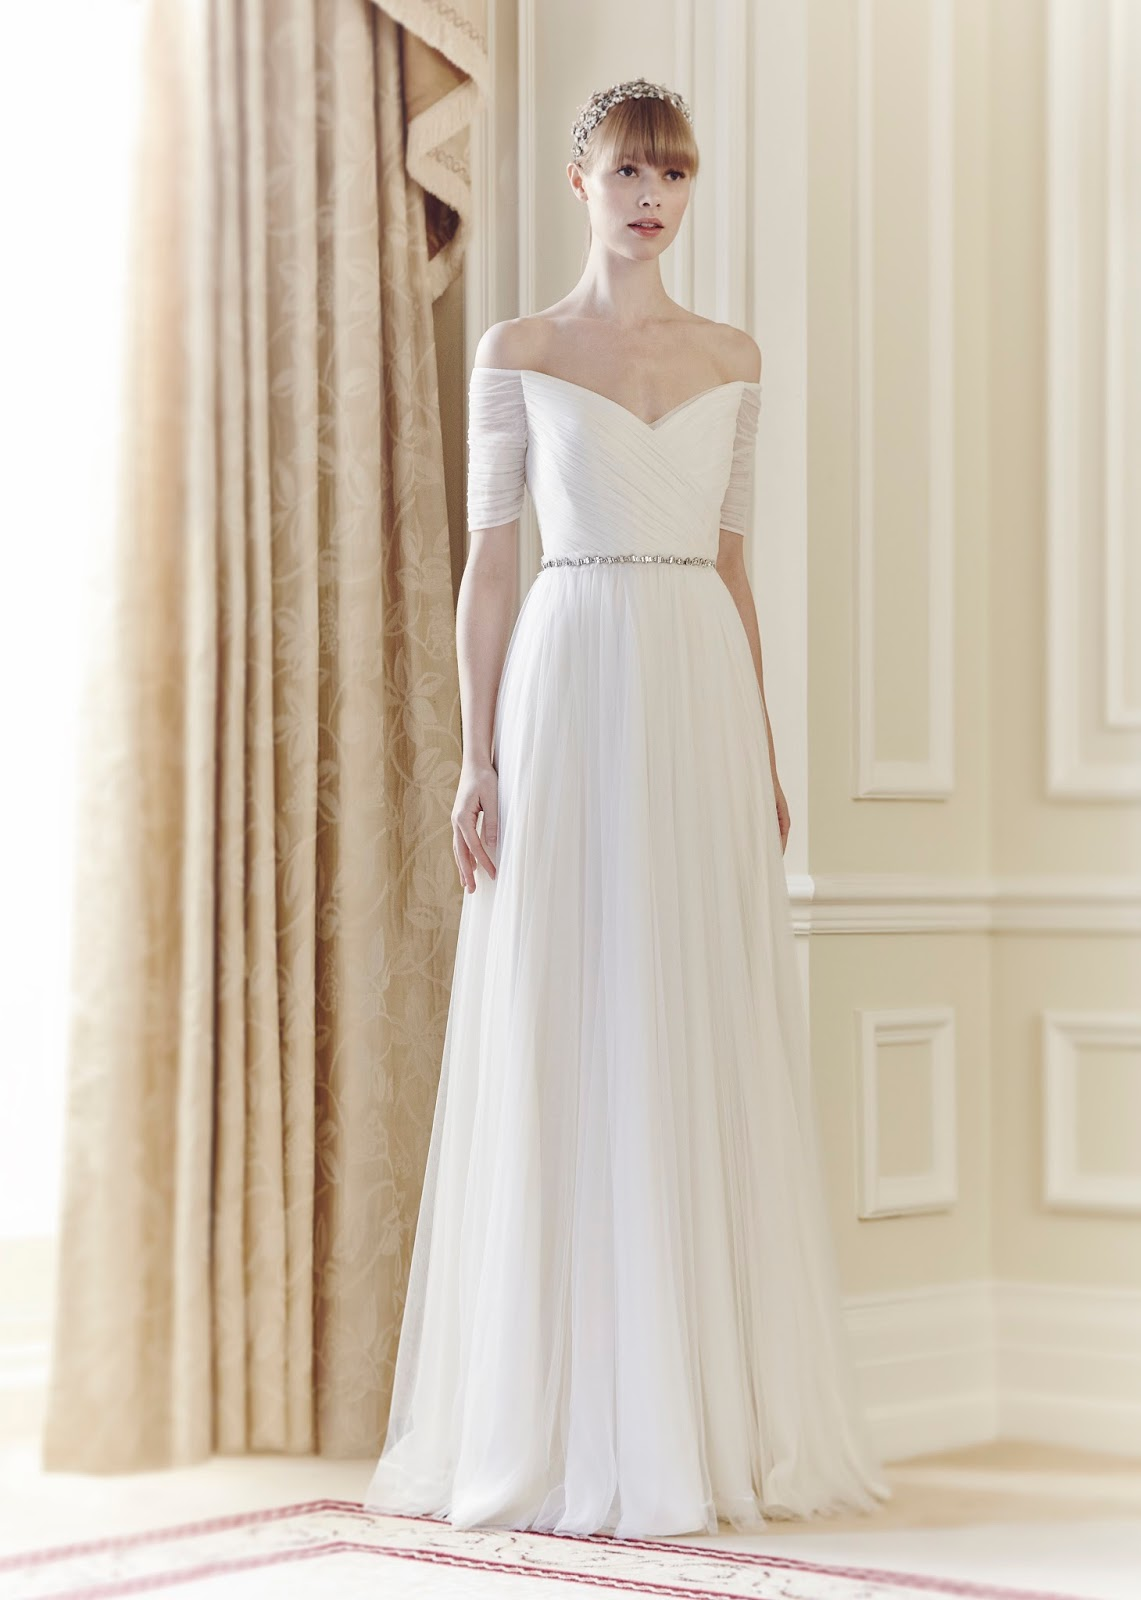 http://www.aislestyle.co.uk/off-the-shoulder-half-sleeeved-aline-tulle-wedding-dress-p-158.html